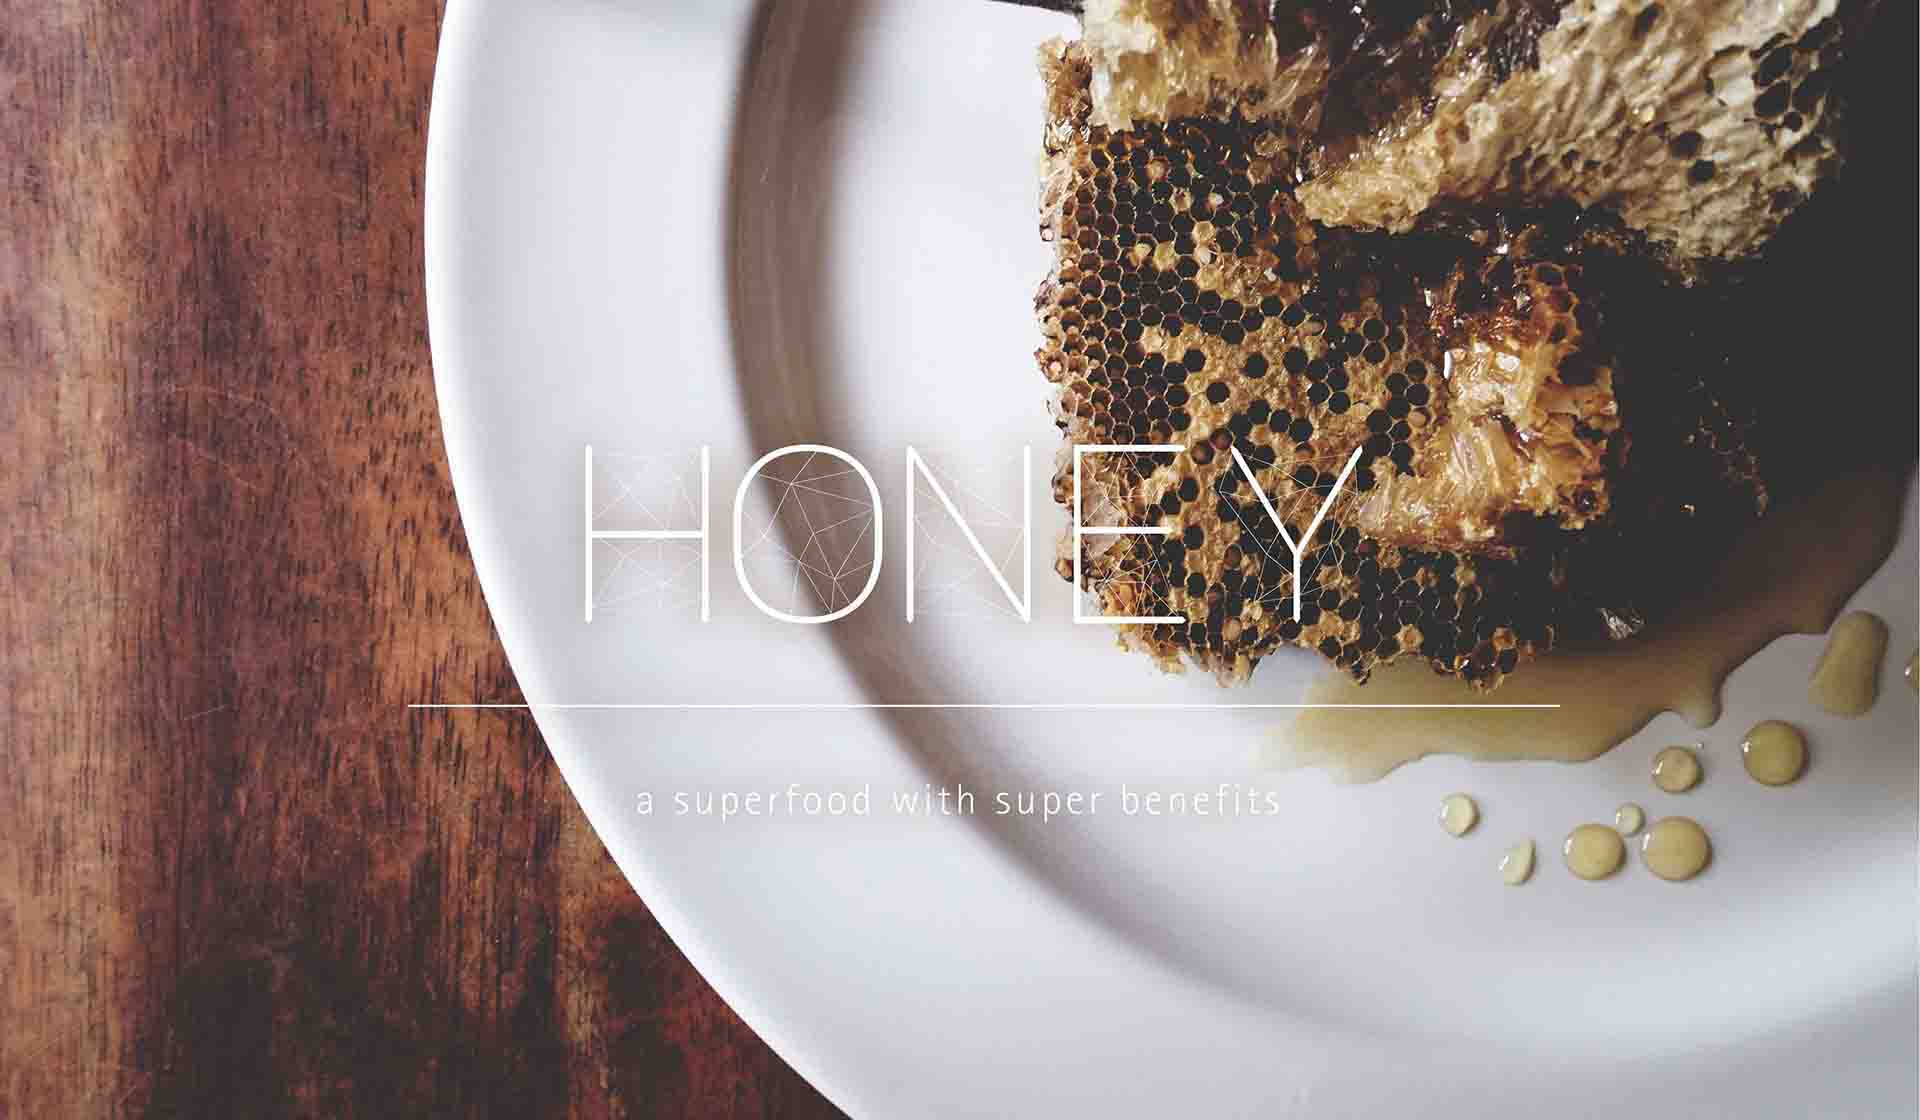 Honey: A Superfood with Super Benefits